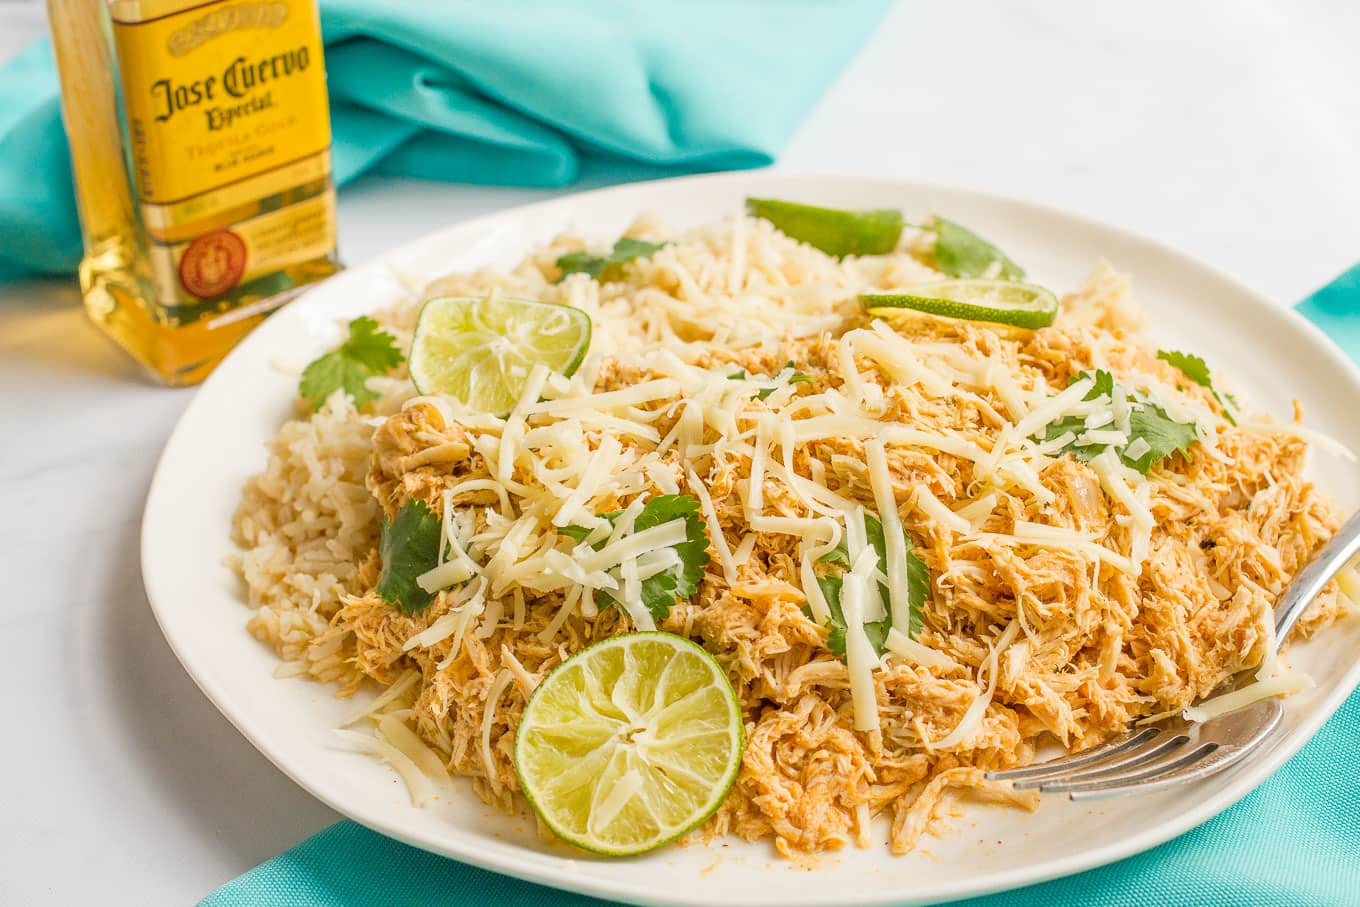 Slow cooker tequila chicken